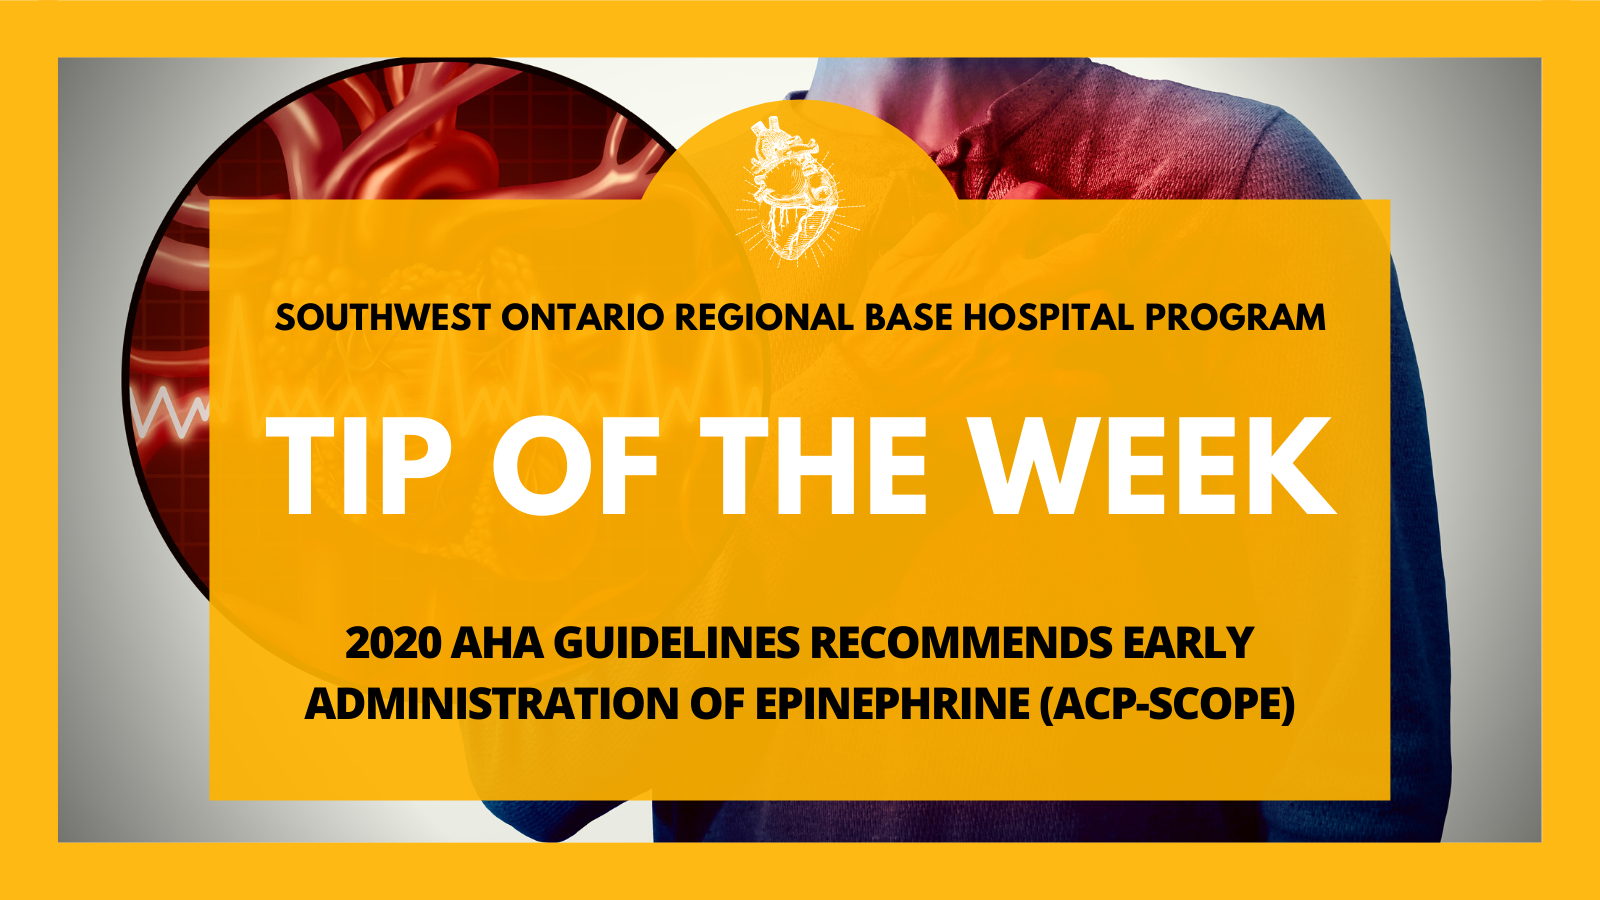 TOTW:2020 AHA Guidelines Recommends Early administration of Epinephrine (ACP-Scope)